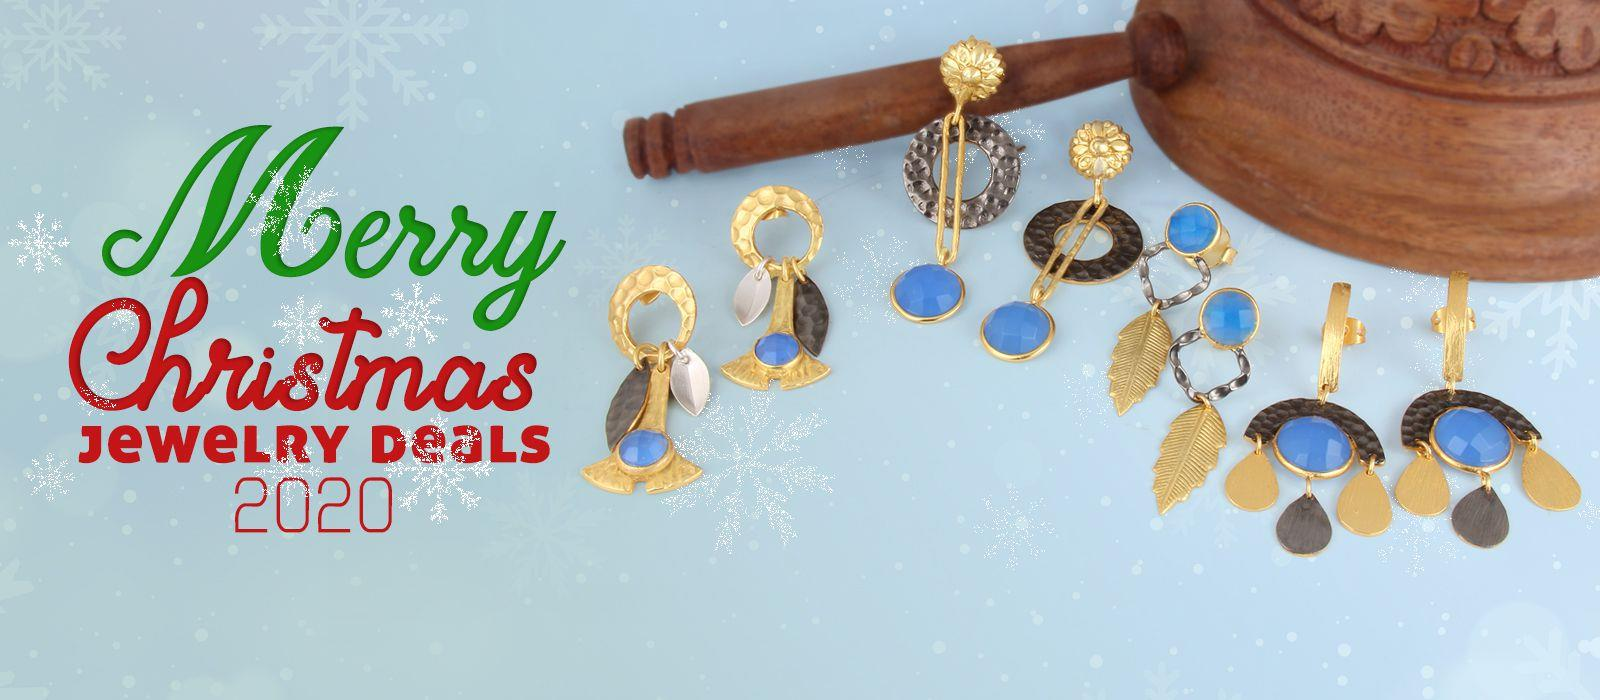 Merry Christmas jewelry deals 2020